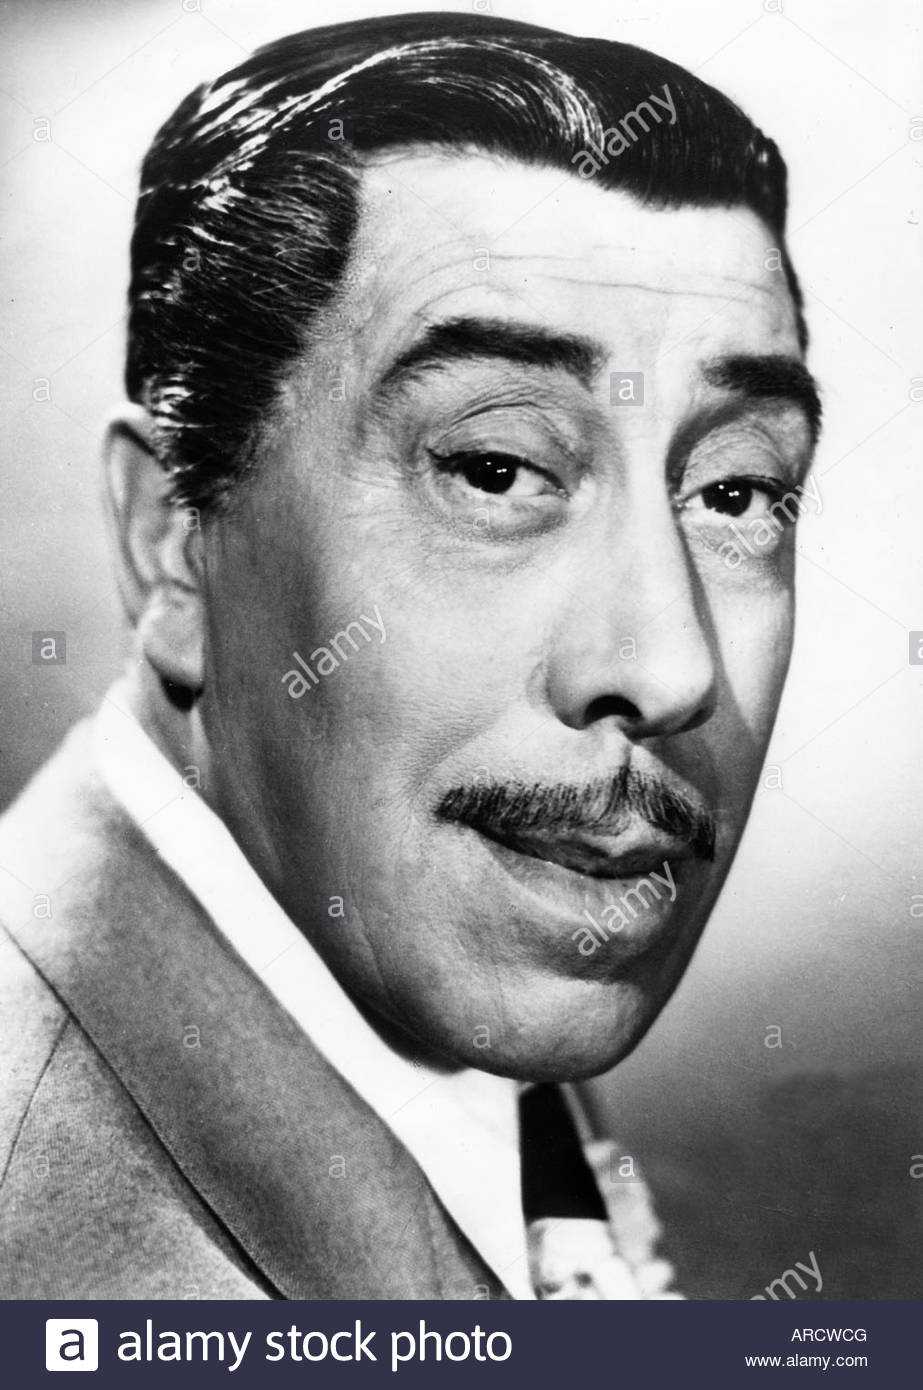 Fernandel, 8.5.1903 - 26.2.1971, French actor and singer, portrait, in movie 'The Sheep Has Five Legs' (Le - Stock Image